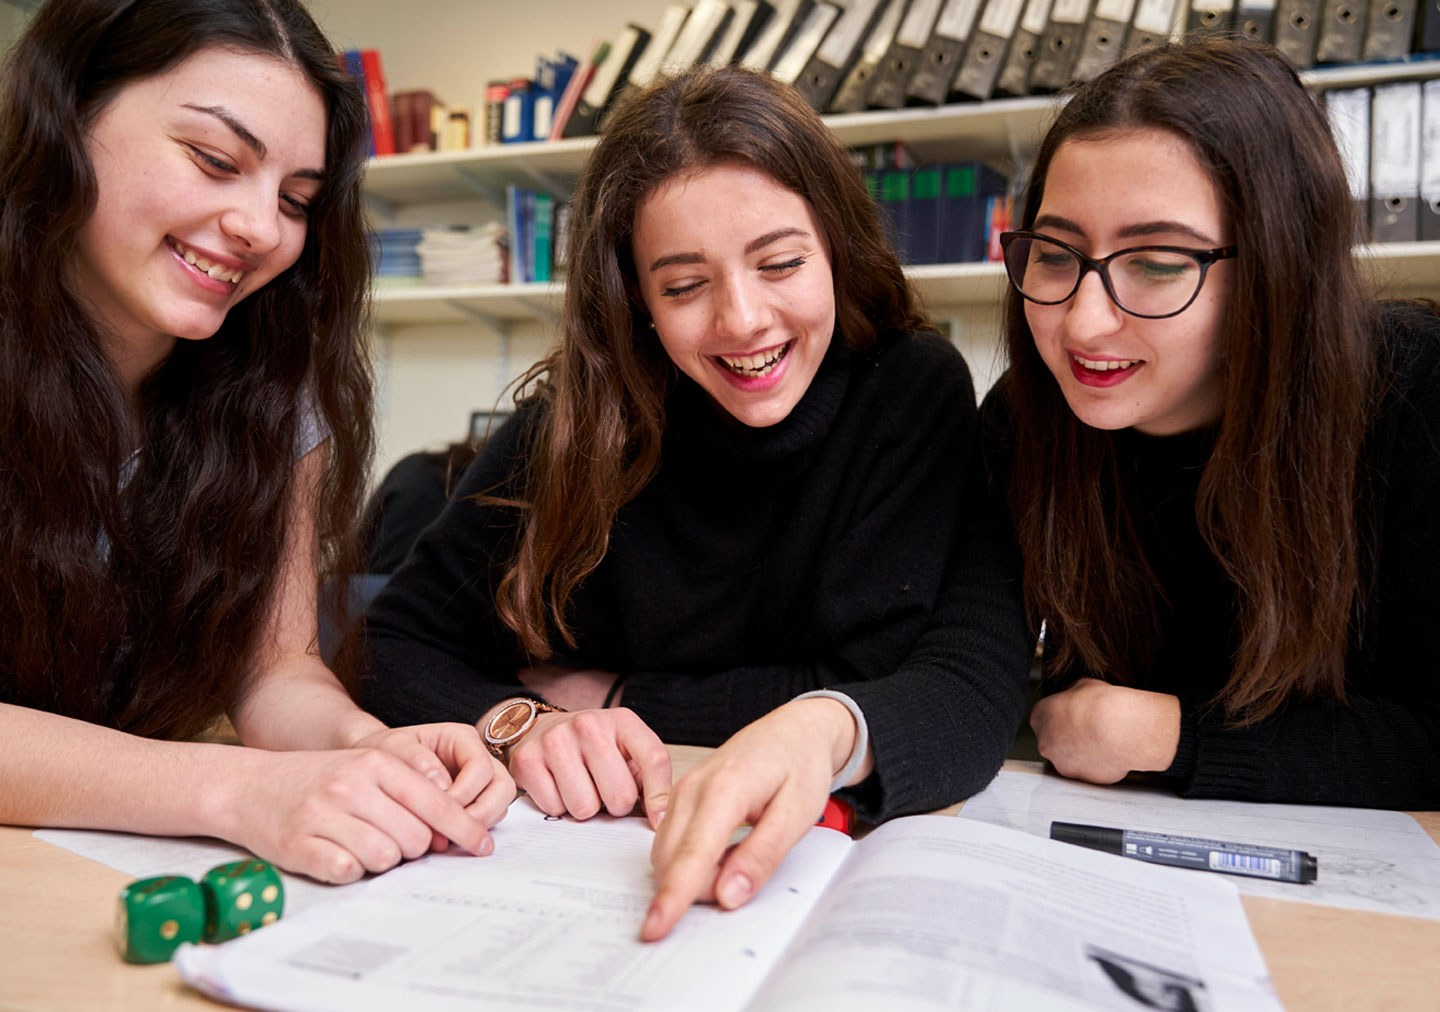 Three students are smiling and looking at a Spanish textbook